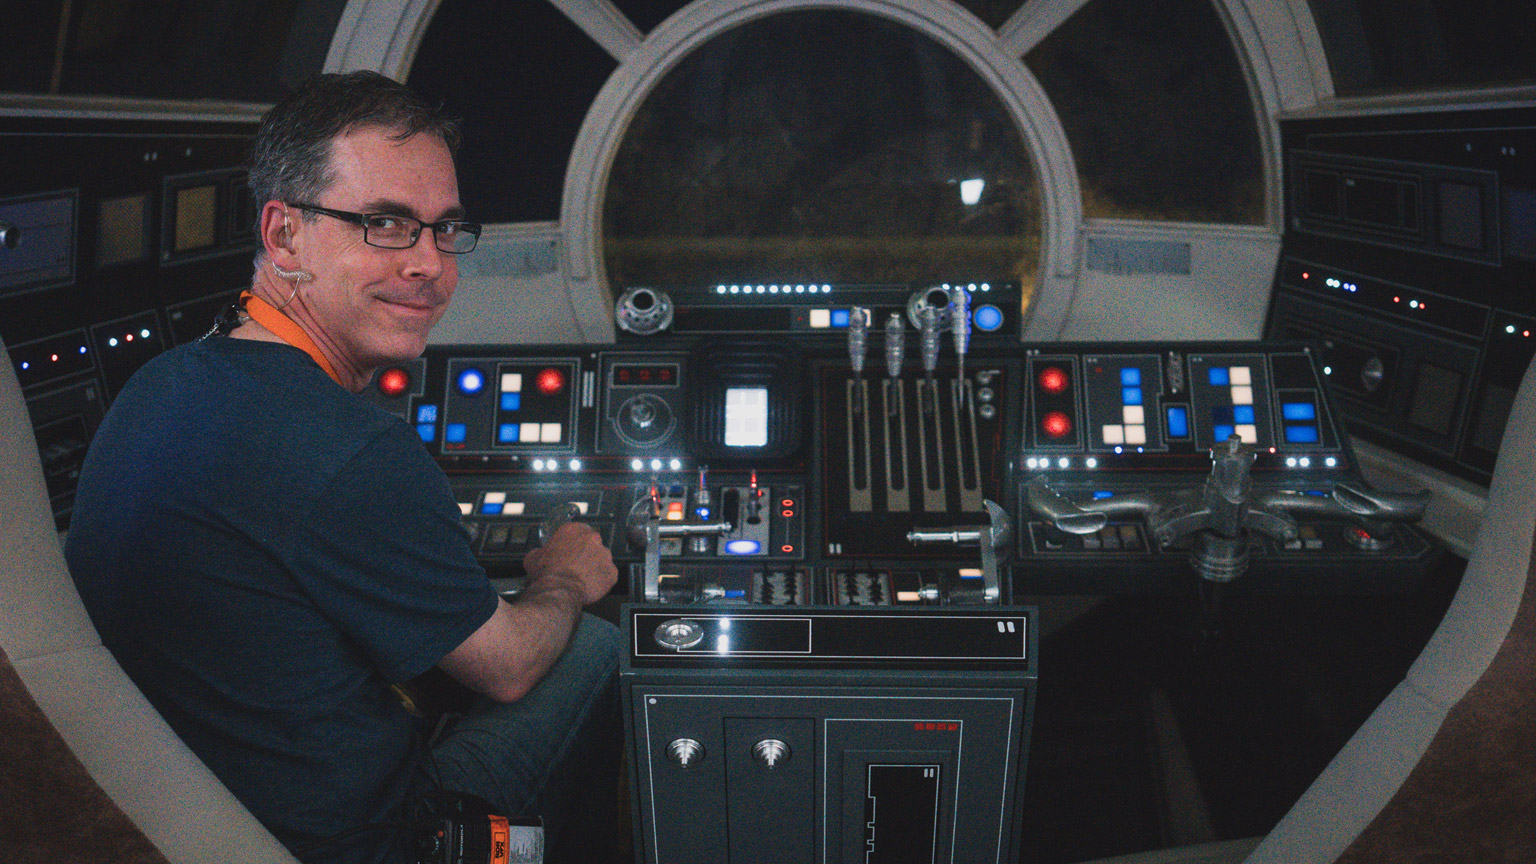 Rob Bredow, right, is seen on the set of Solo: A Star Wars Story.